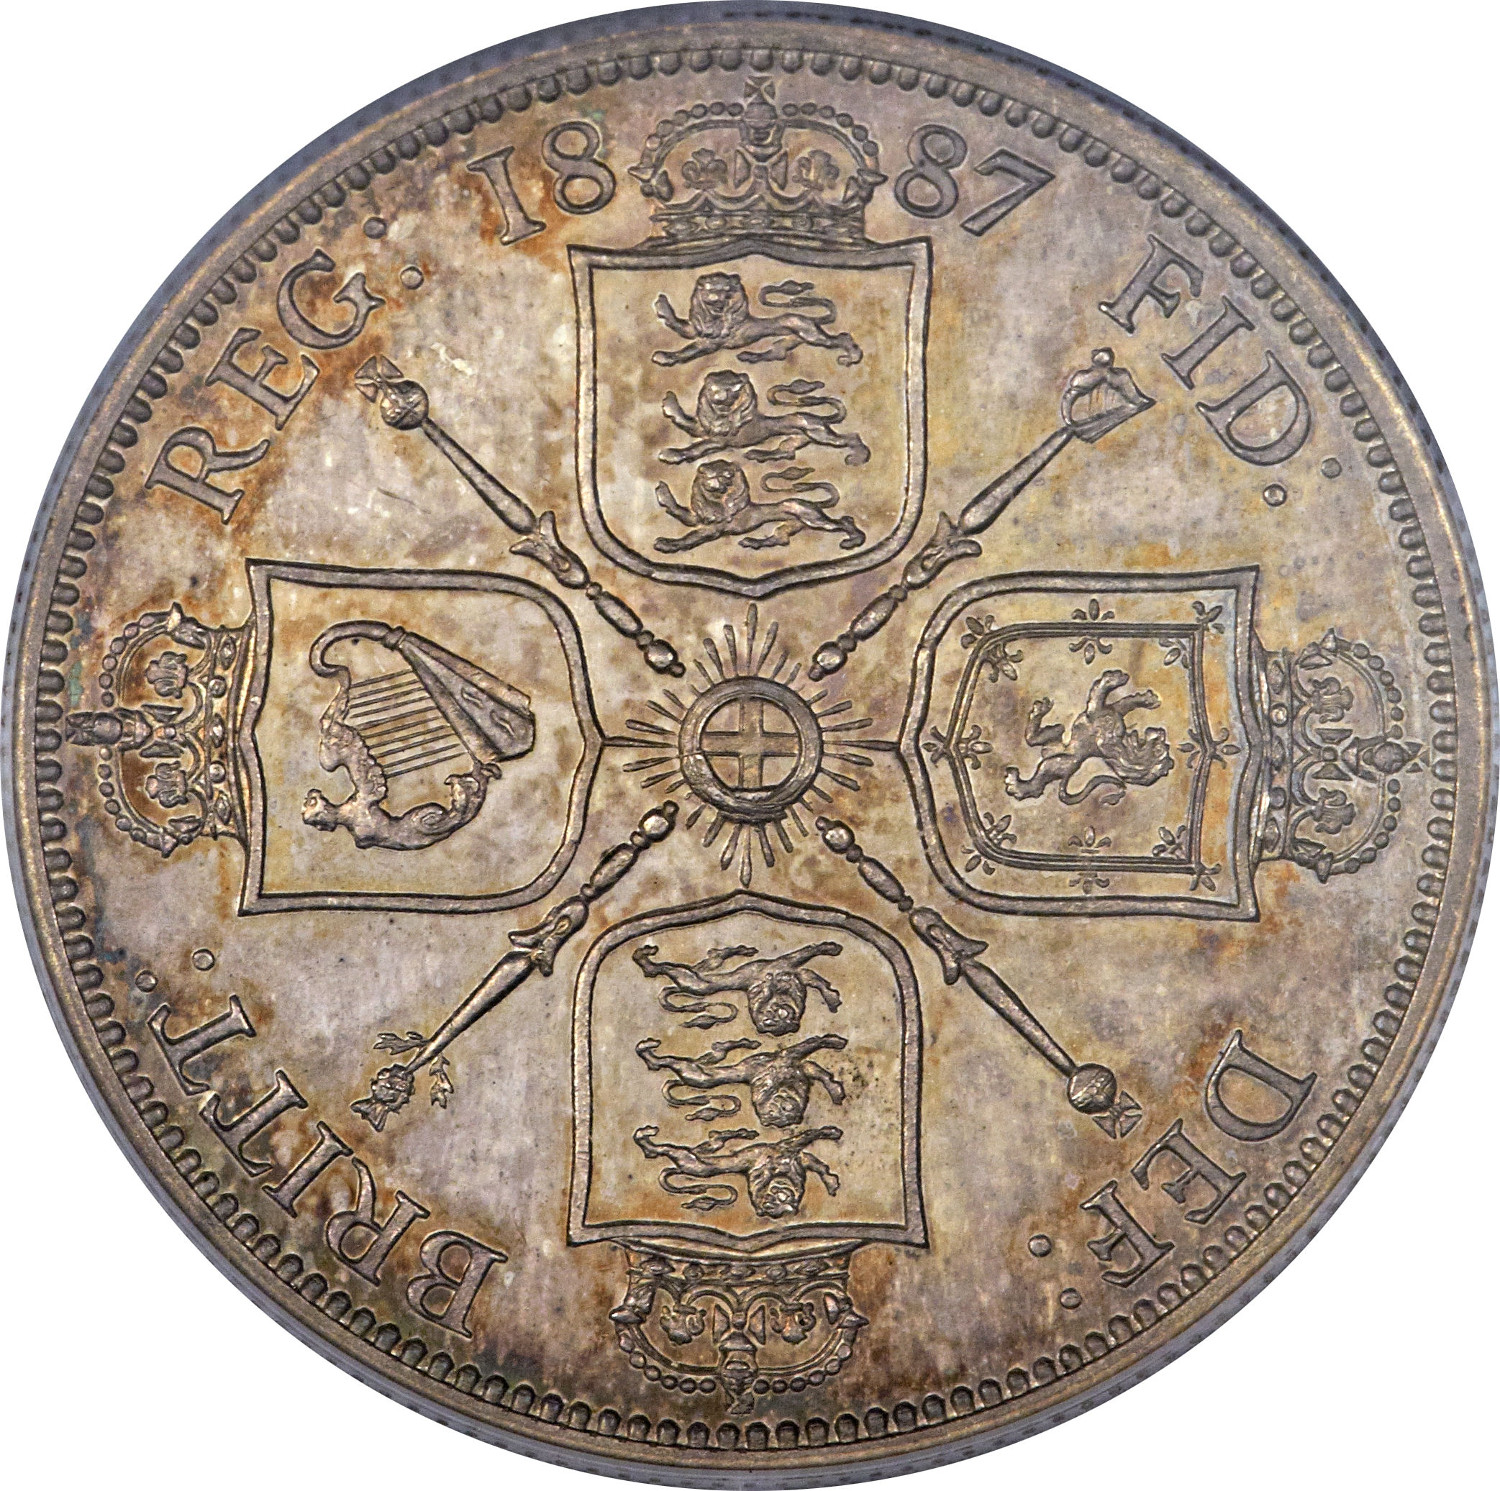 Florin 1887 Jubilee: Photo Great Britain 1887 florin KM-762